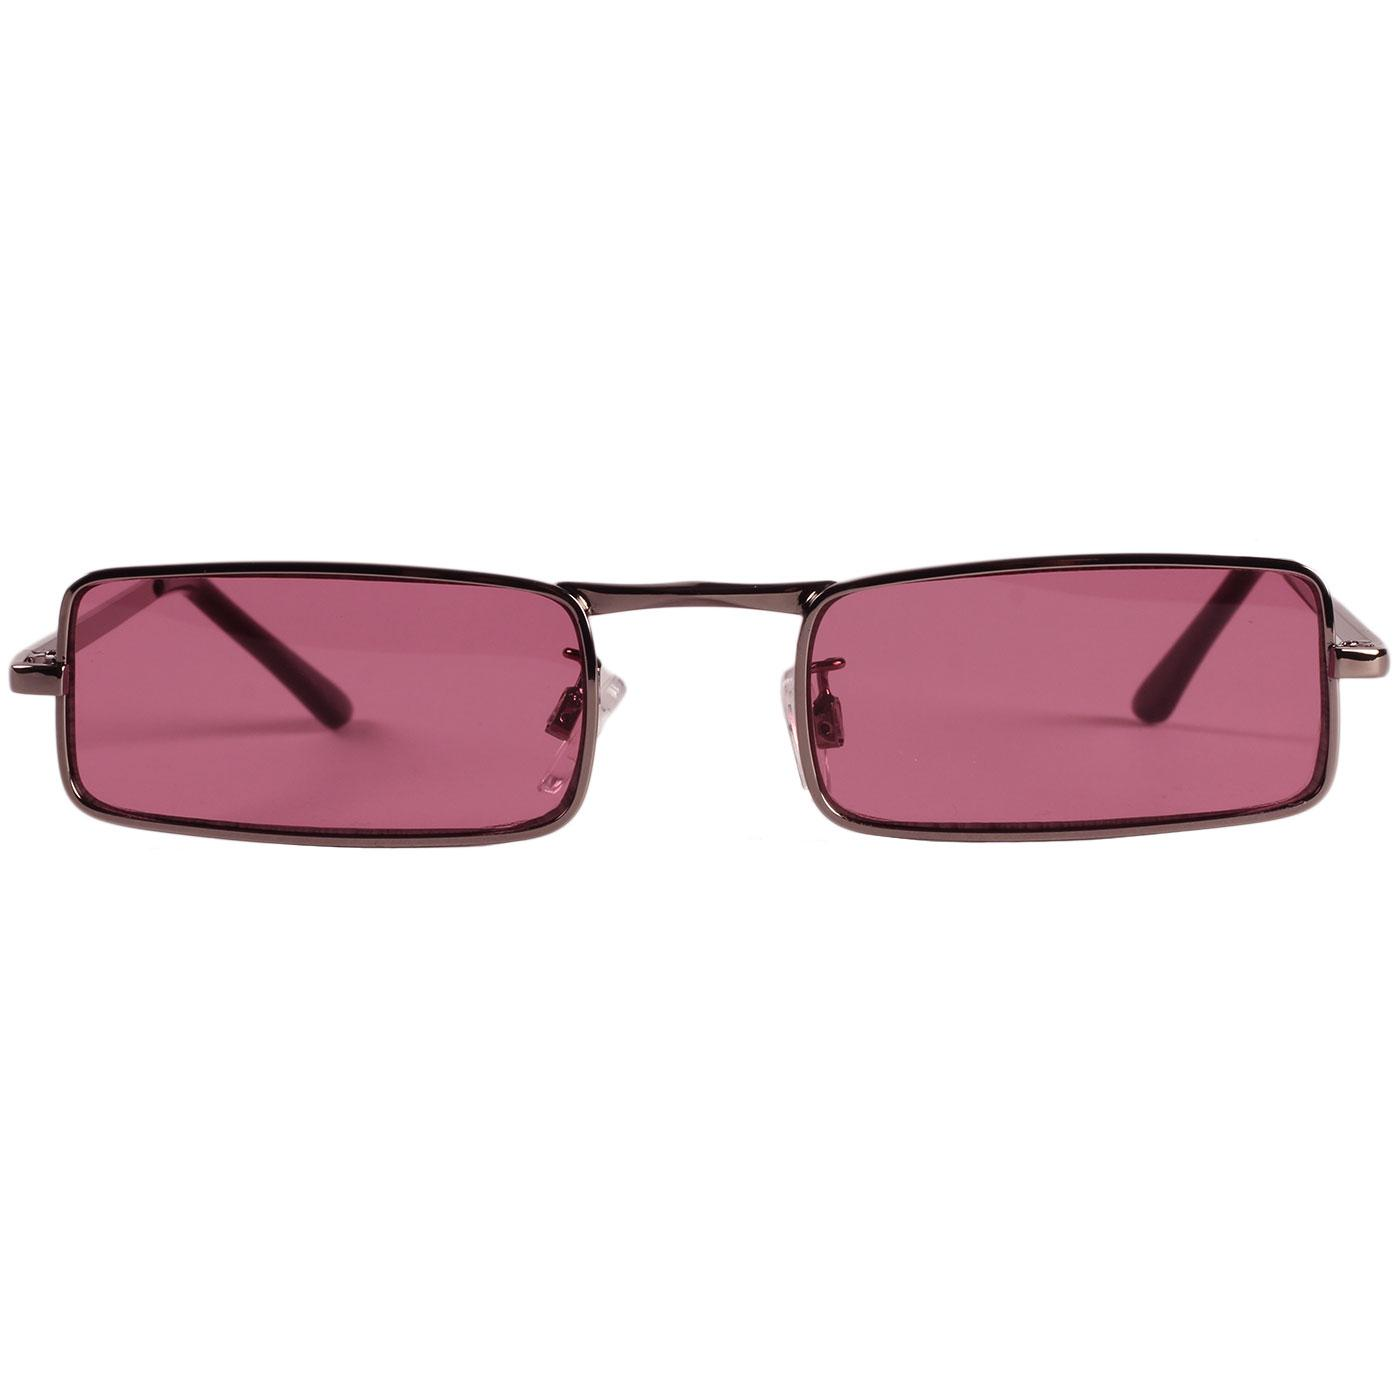 McGuinn MADCAP ENGLAND 1960s Granny Glasses PINK